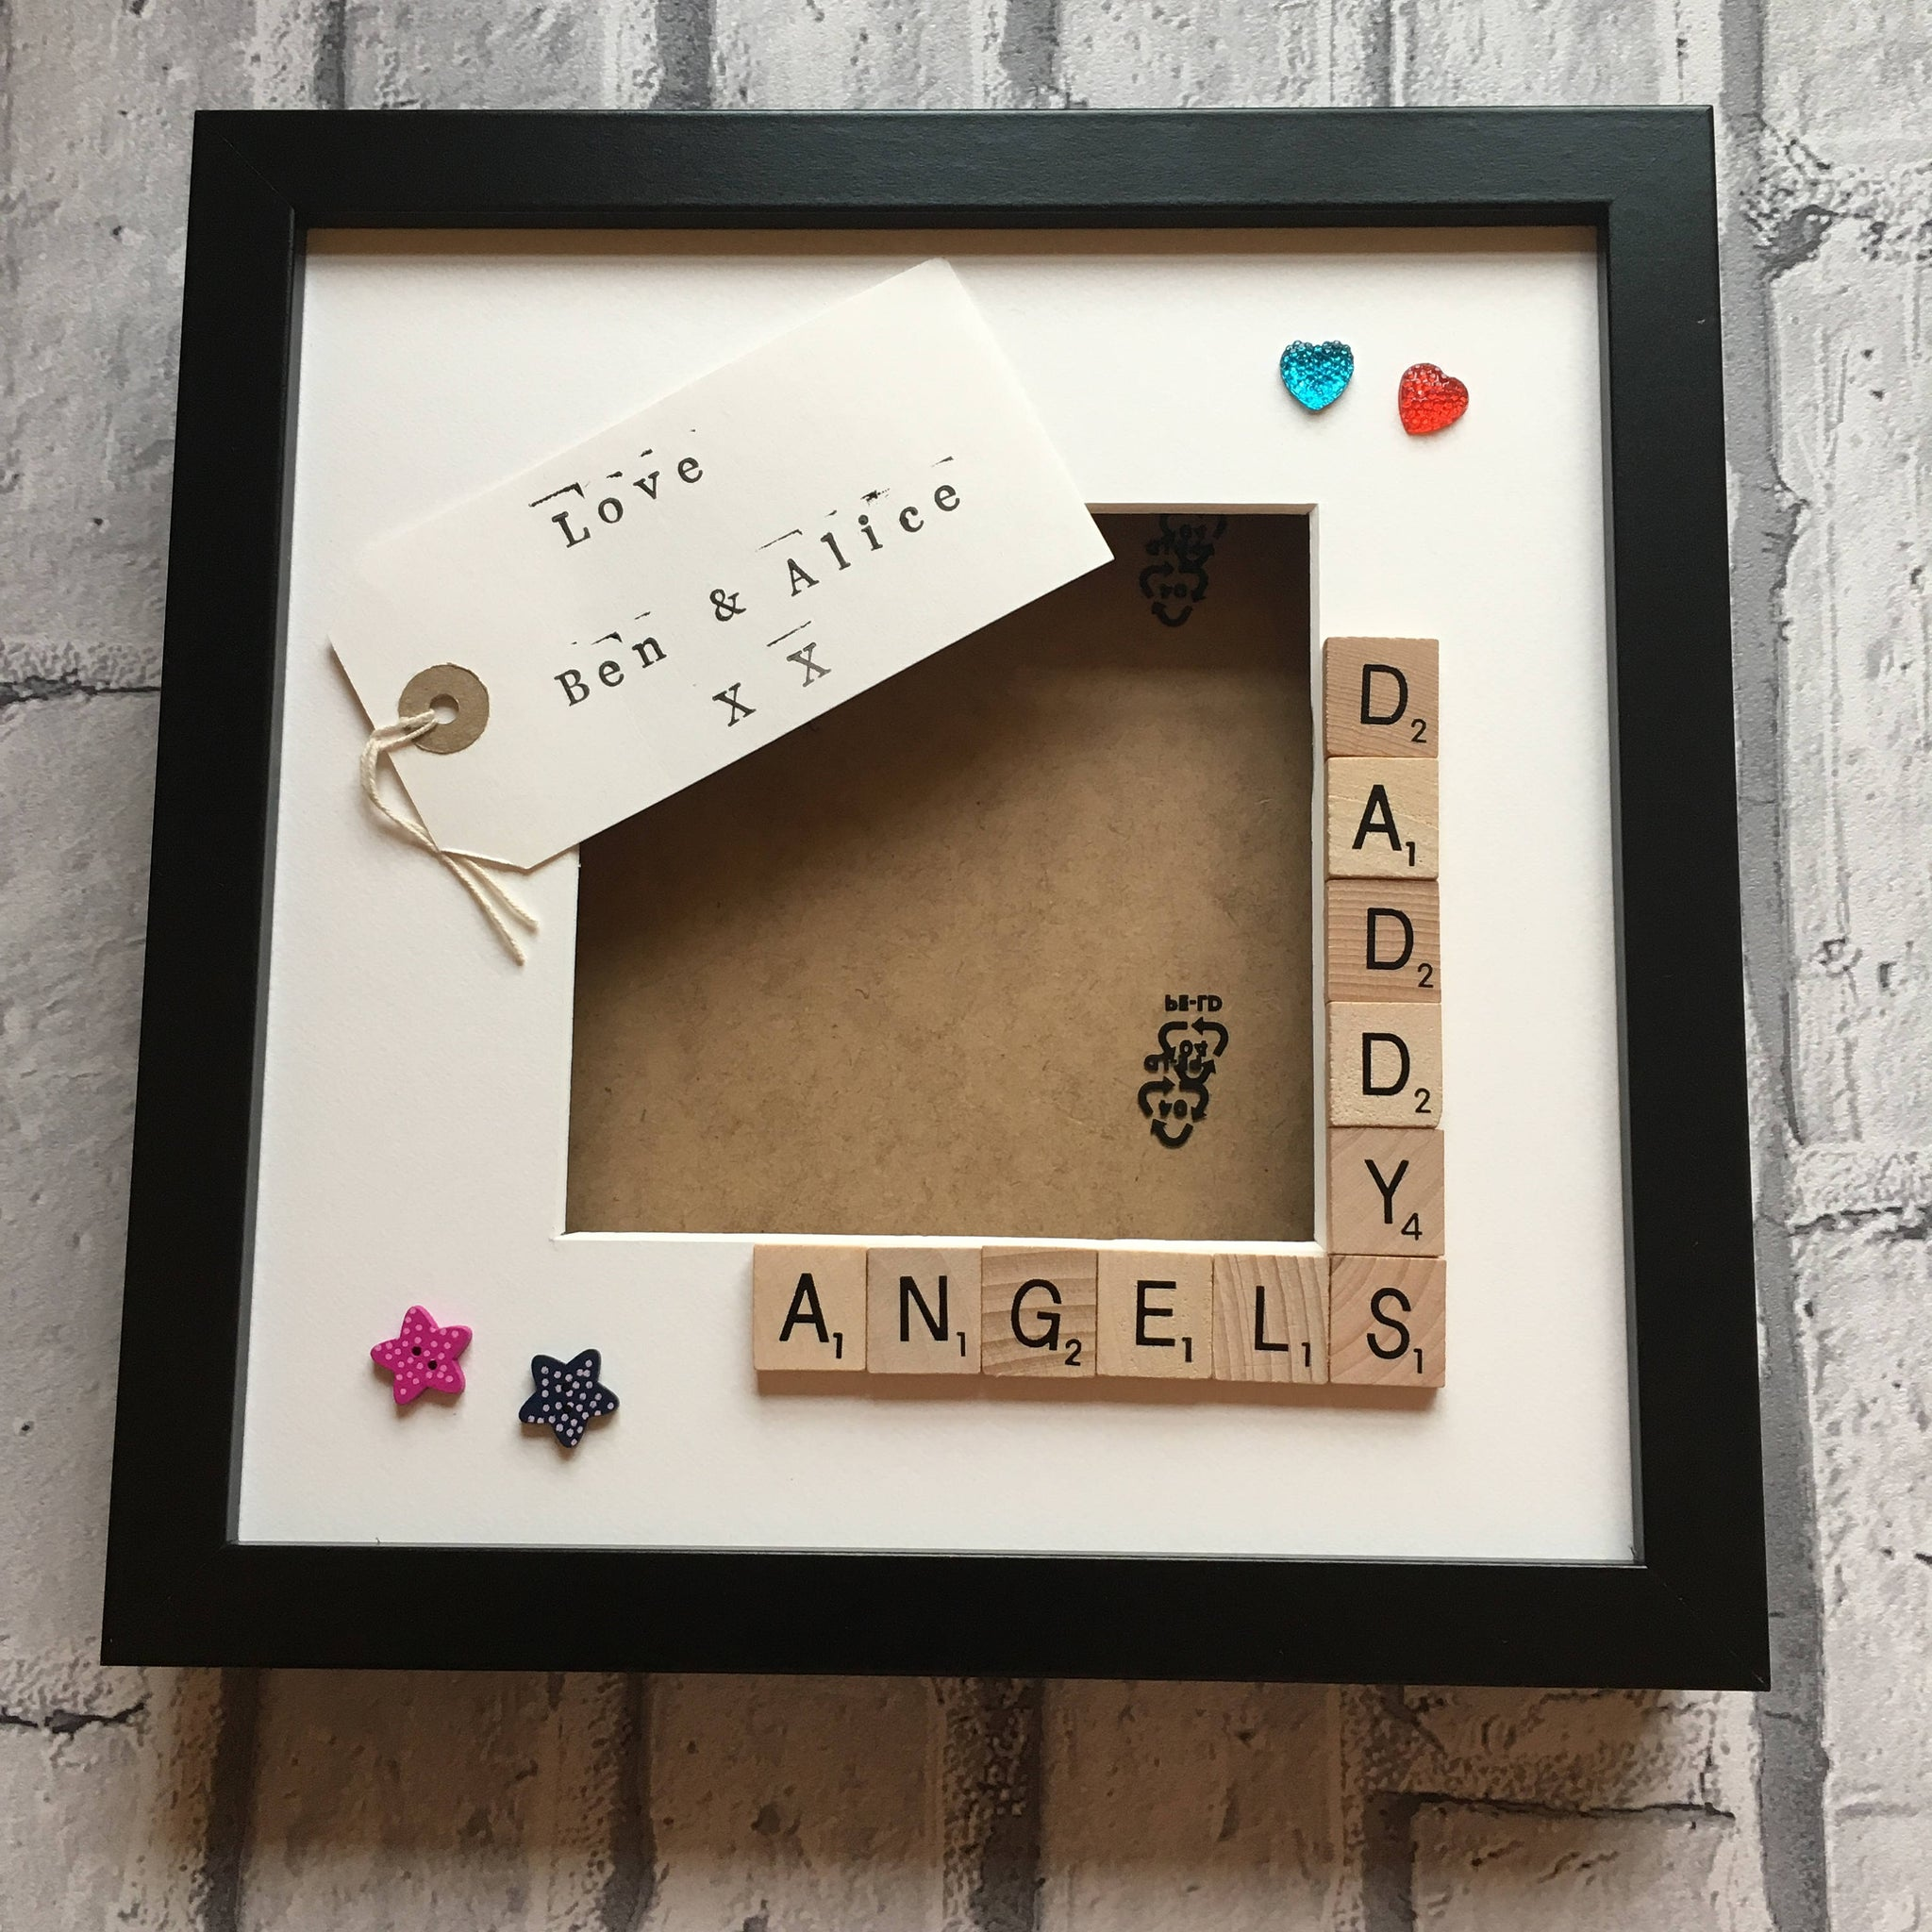 Daddy's Angels, Stars, Monsters Frame, Personalised Scrabble Photo Frame.